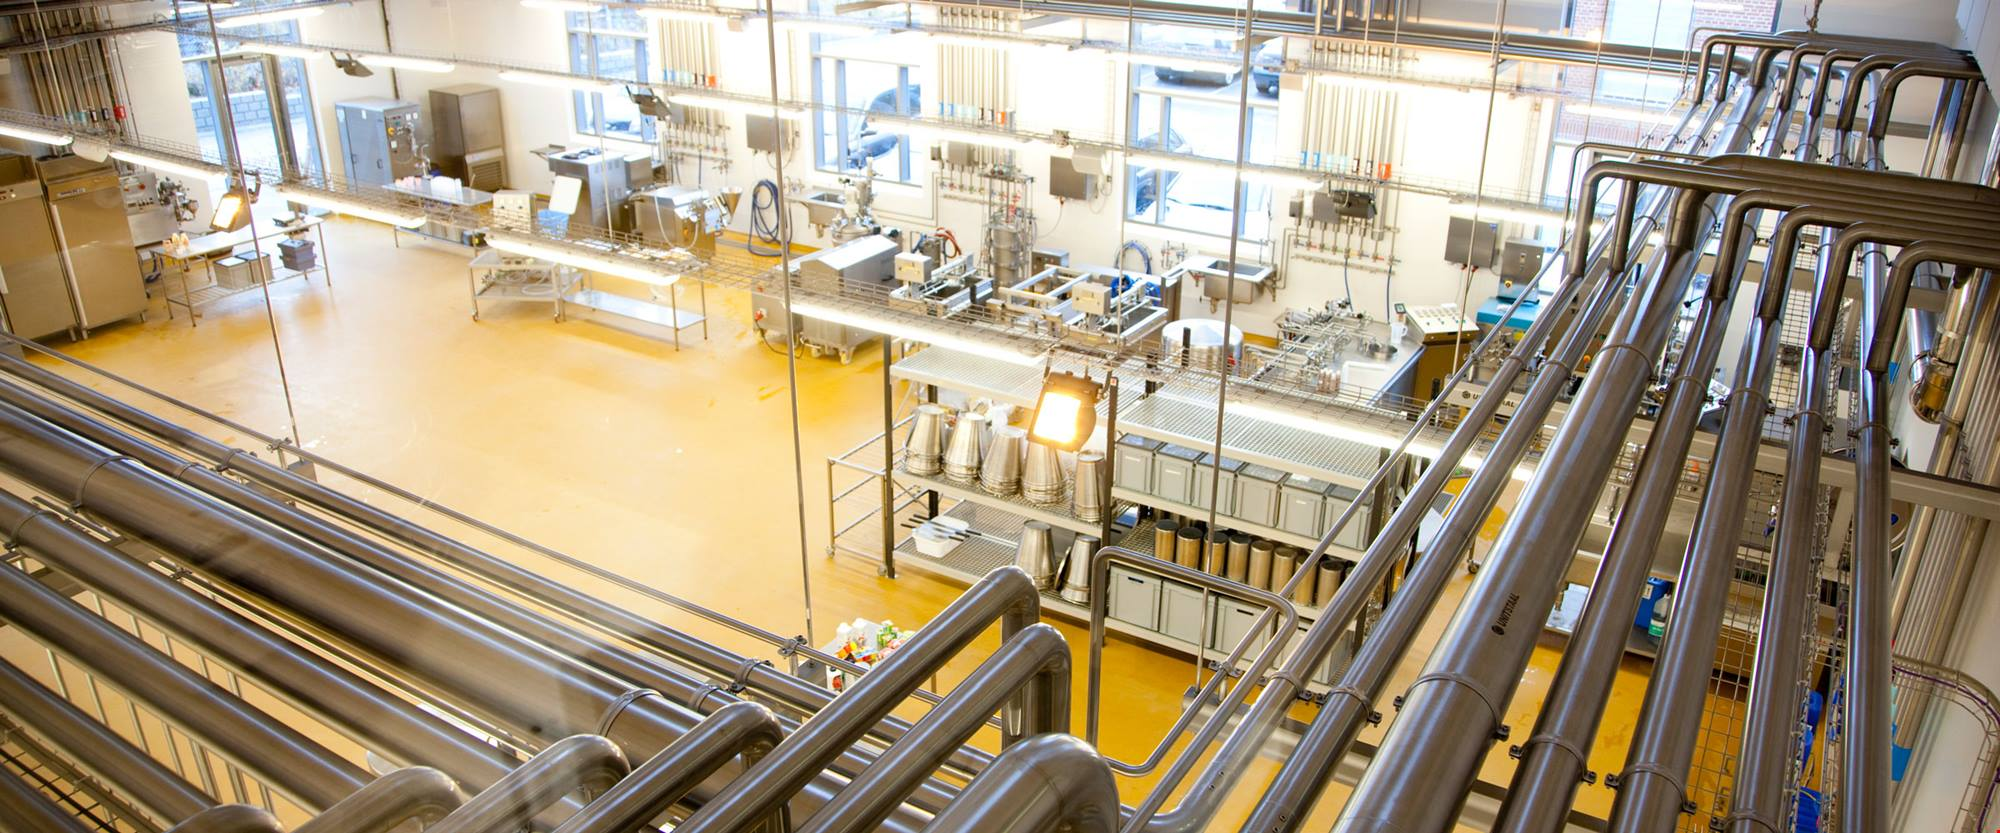 Arla Foods Ingredients runs high-tech application centres in Argentina and Denmark